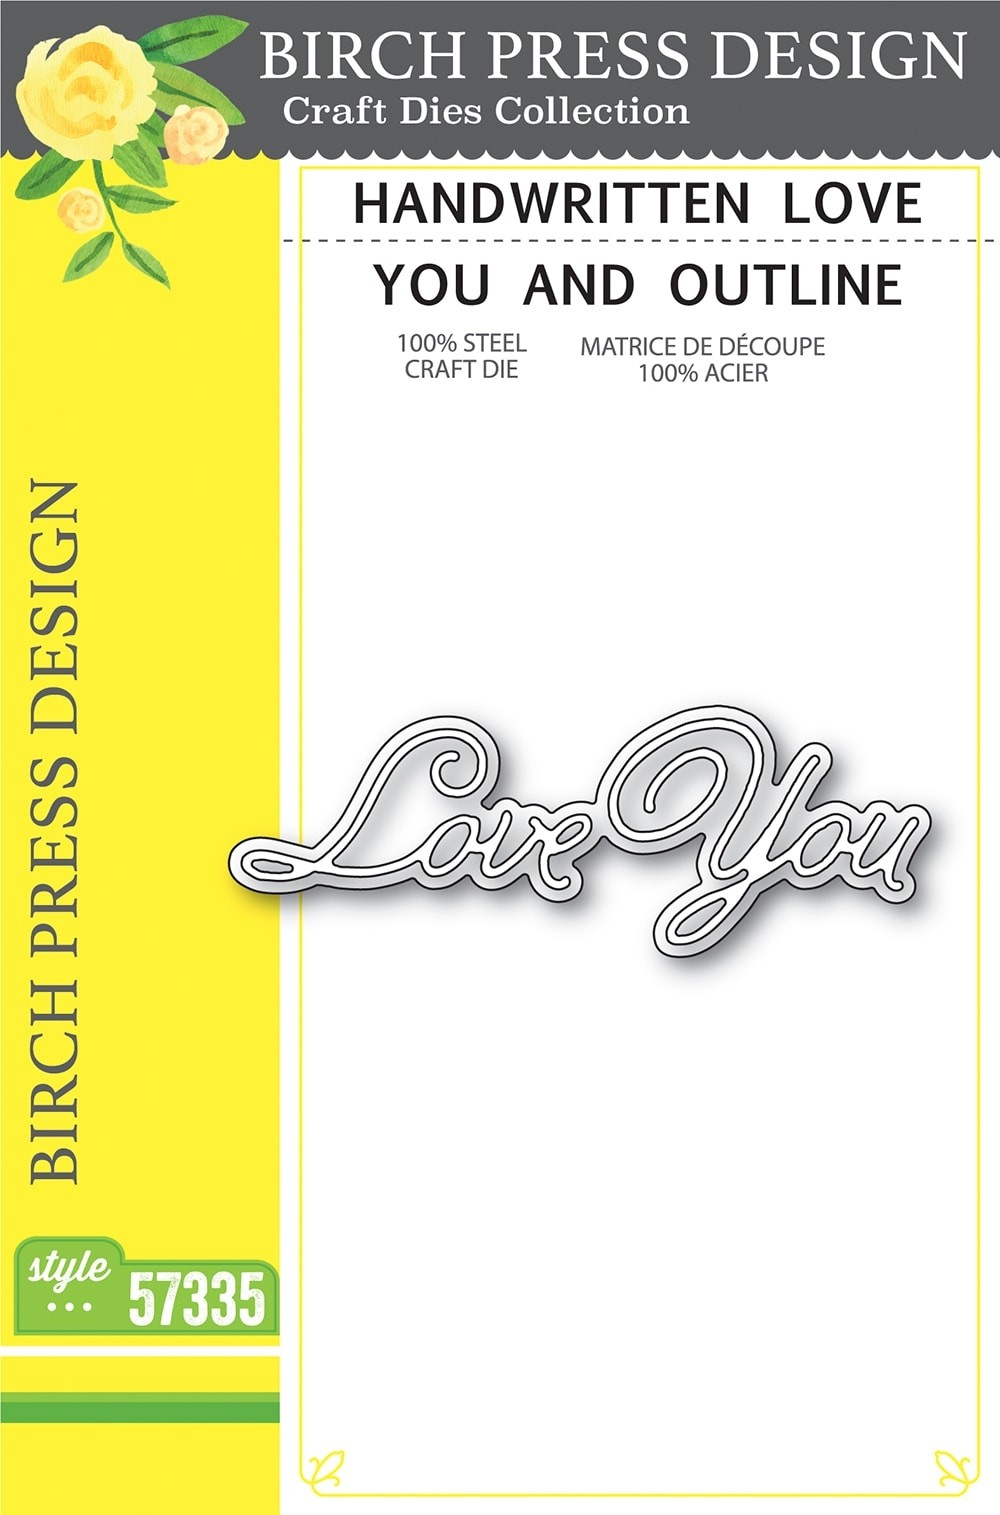 Birch Press Handwritten Love You and Outline 57335